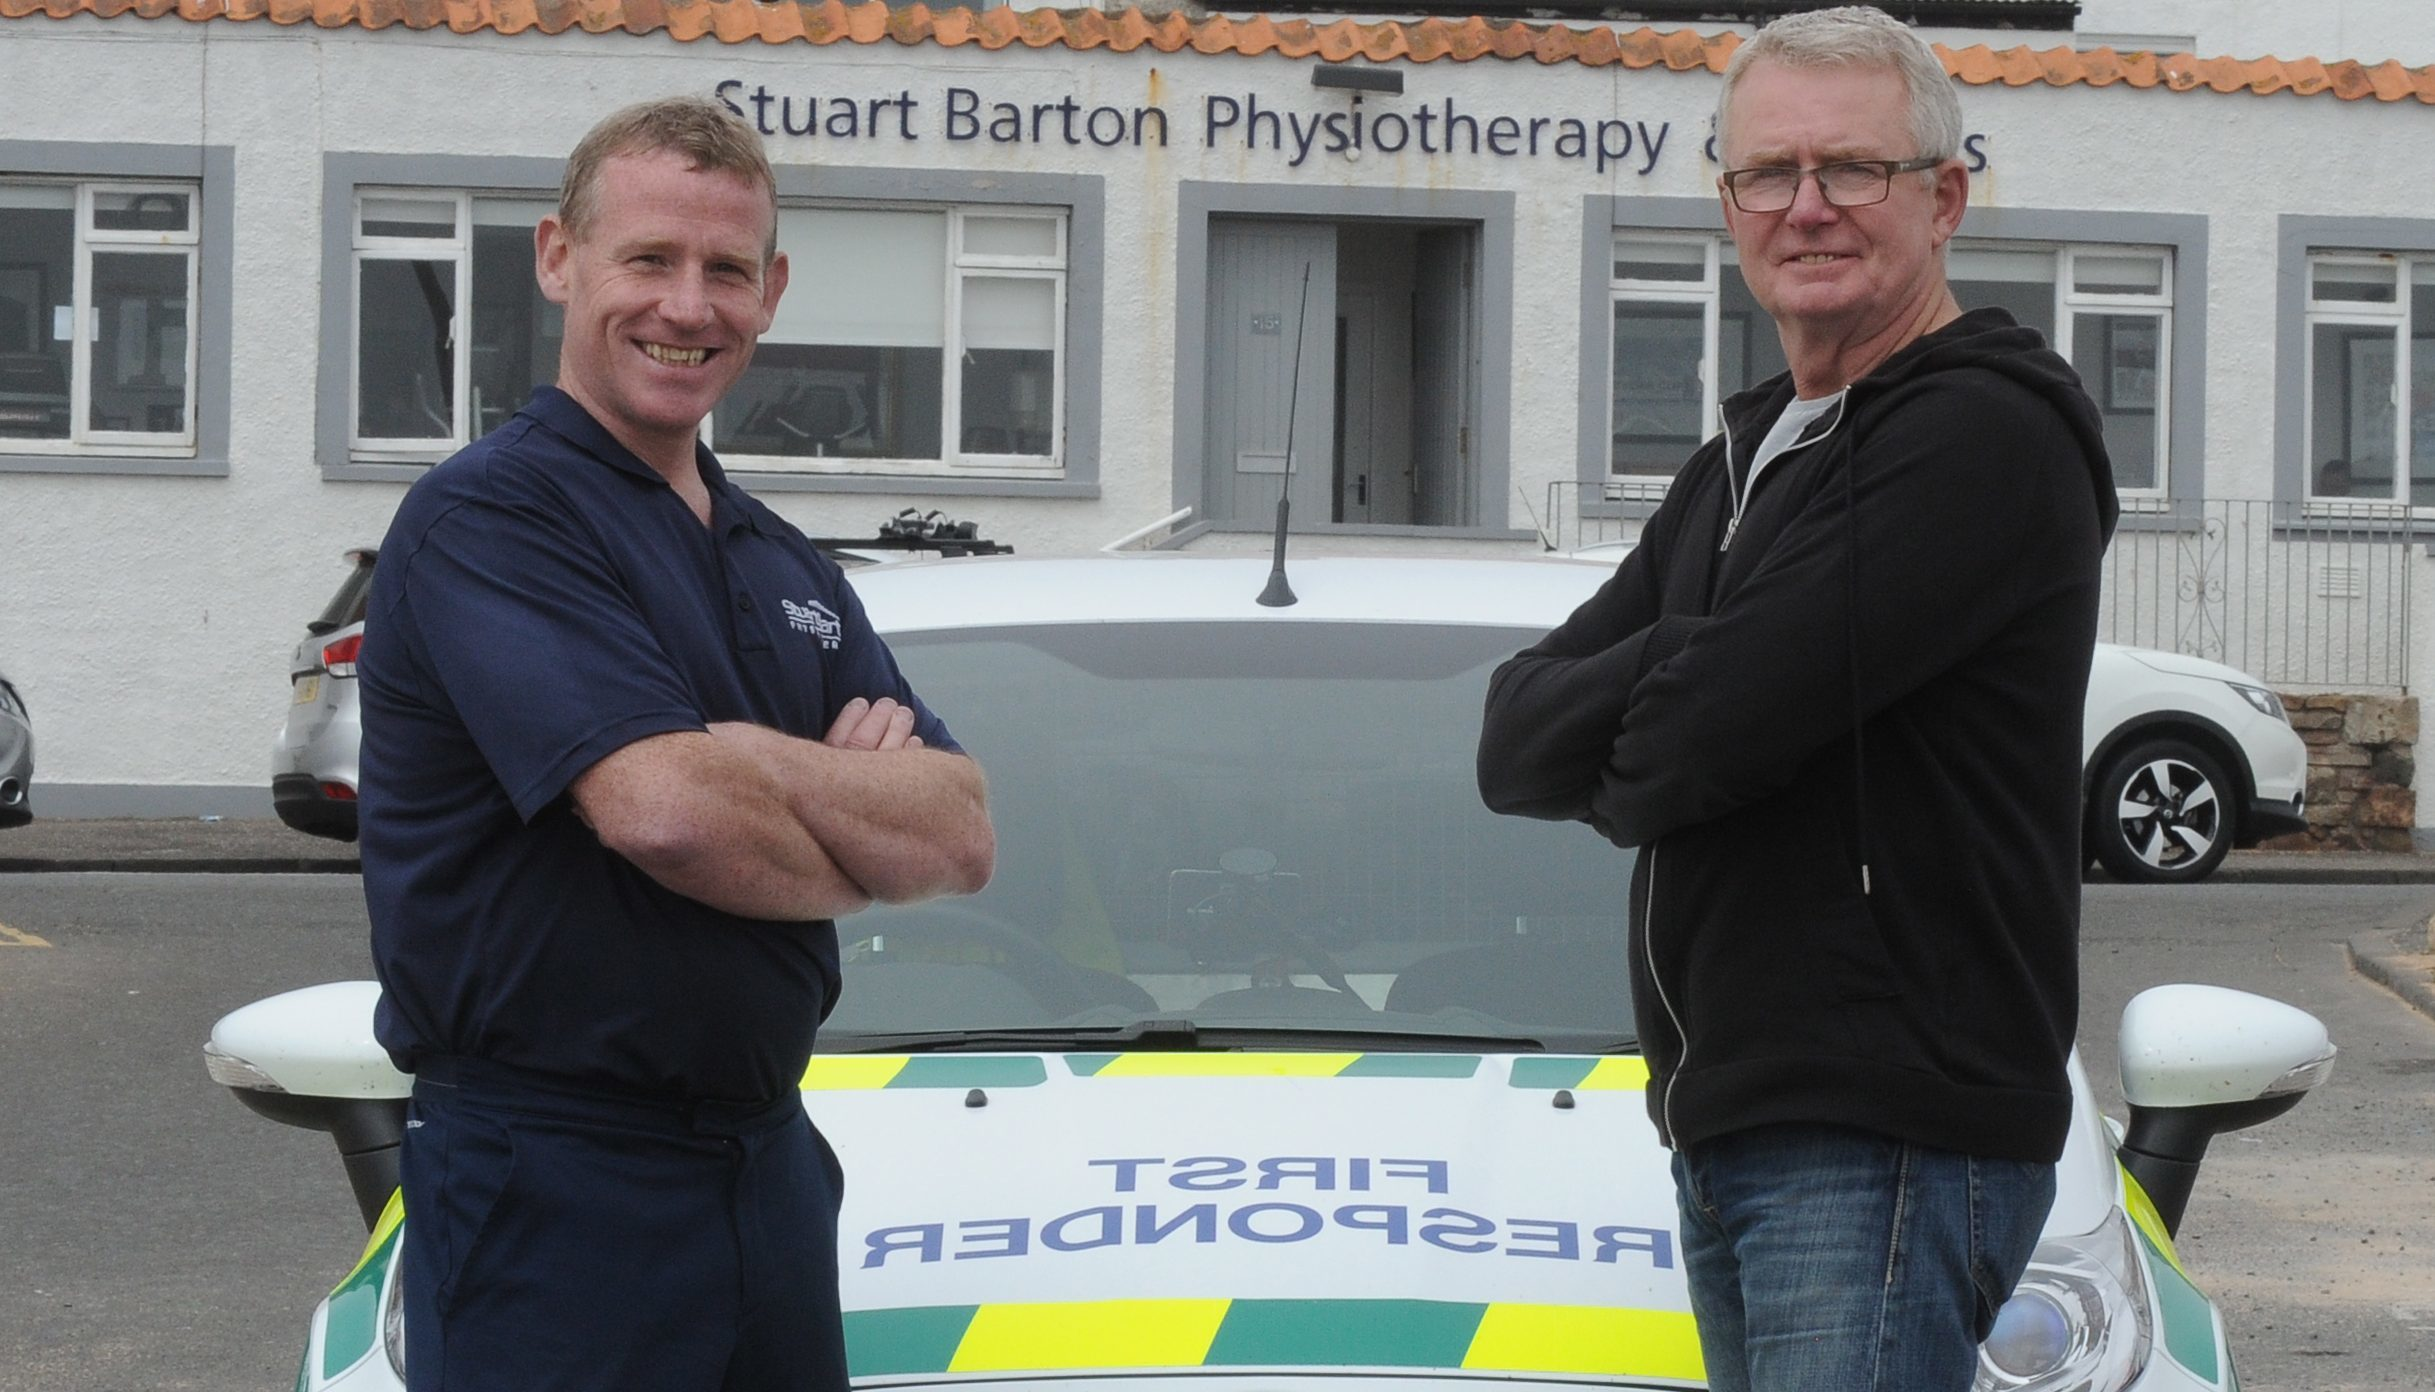 Stuart Barton (left) with Brian Clarke, whose life he saved